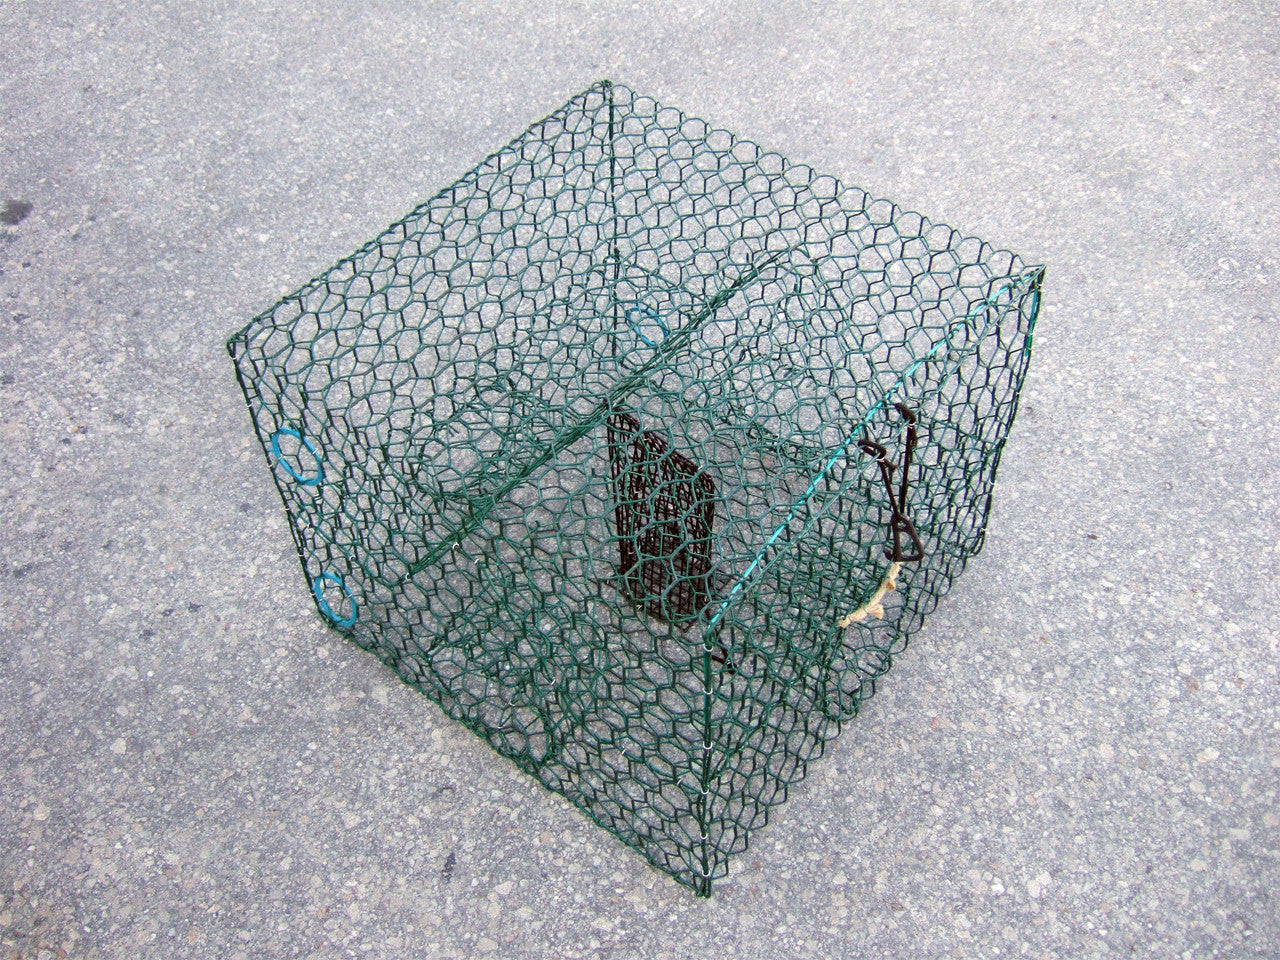 Blue crab trap galvanized or vinyl coated wire trap for Blue crab fishing